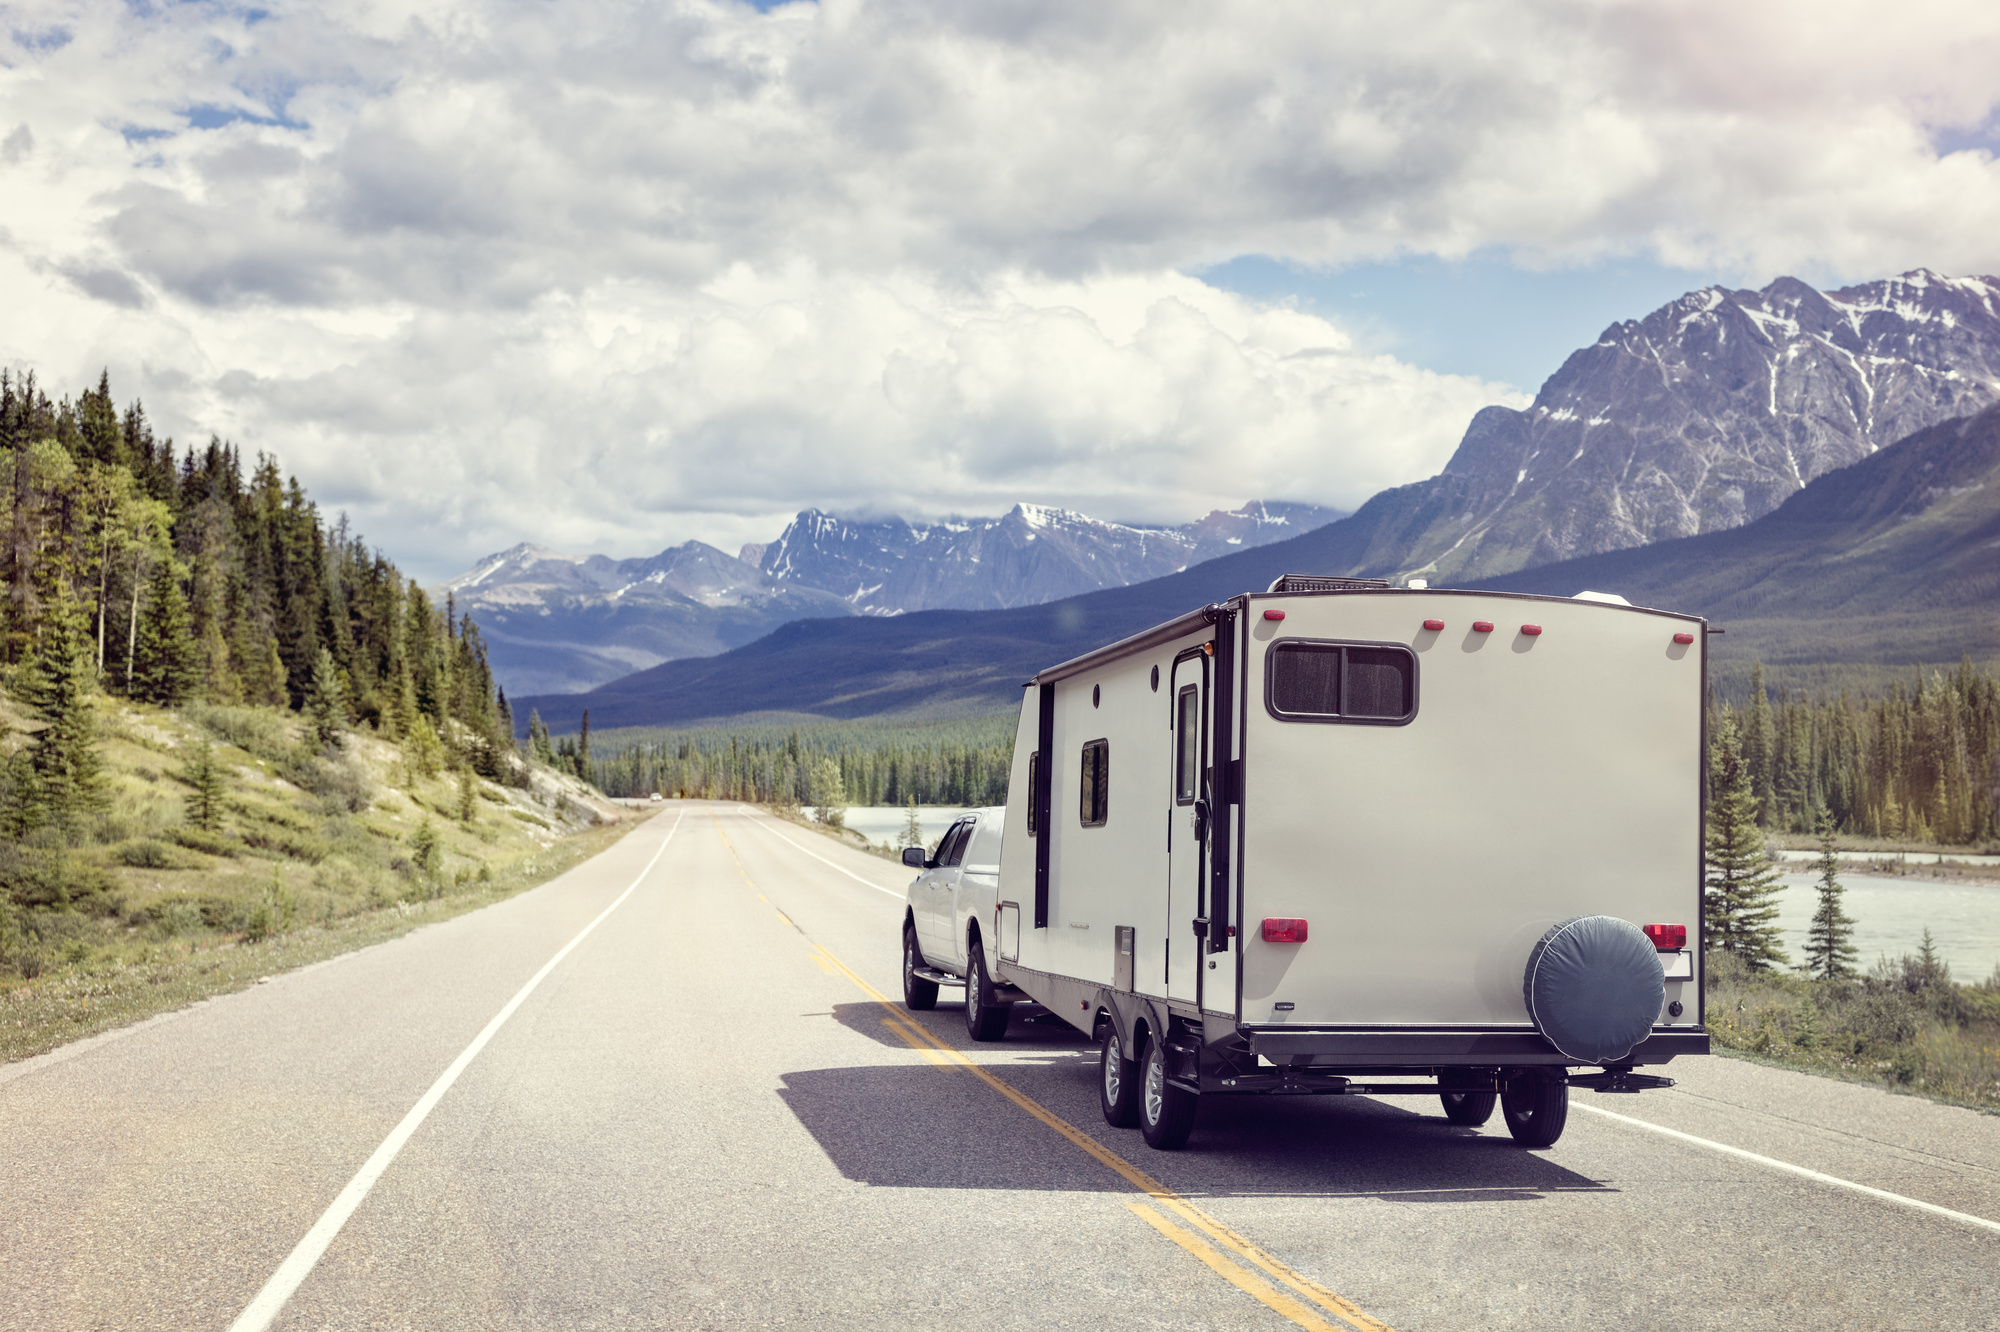 7 Things to Look for When Buying an RV